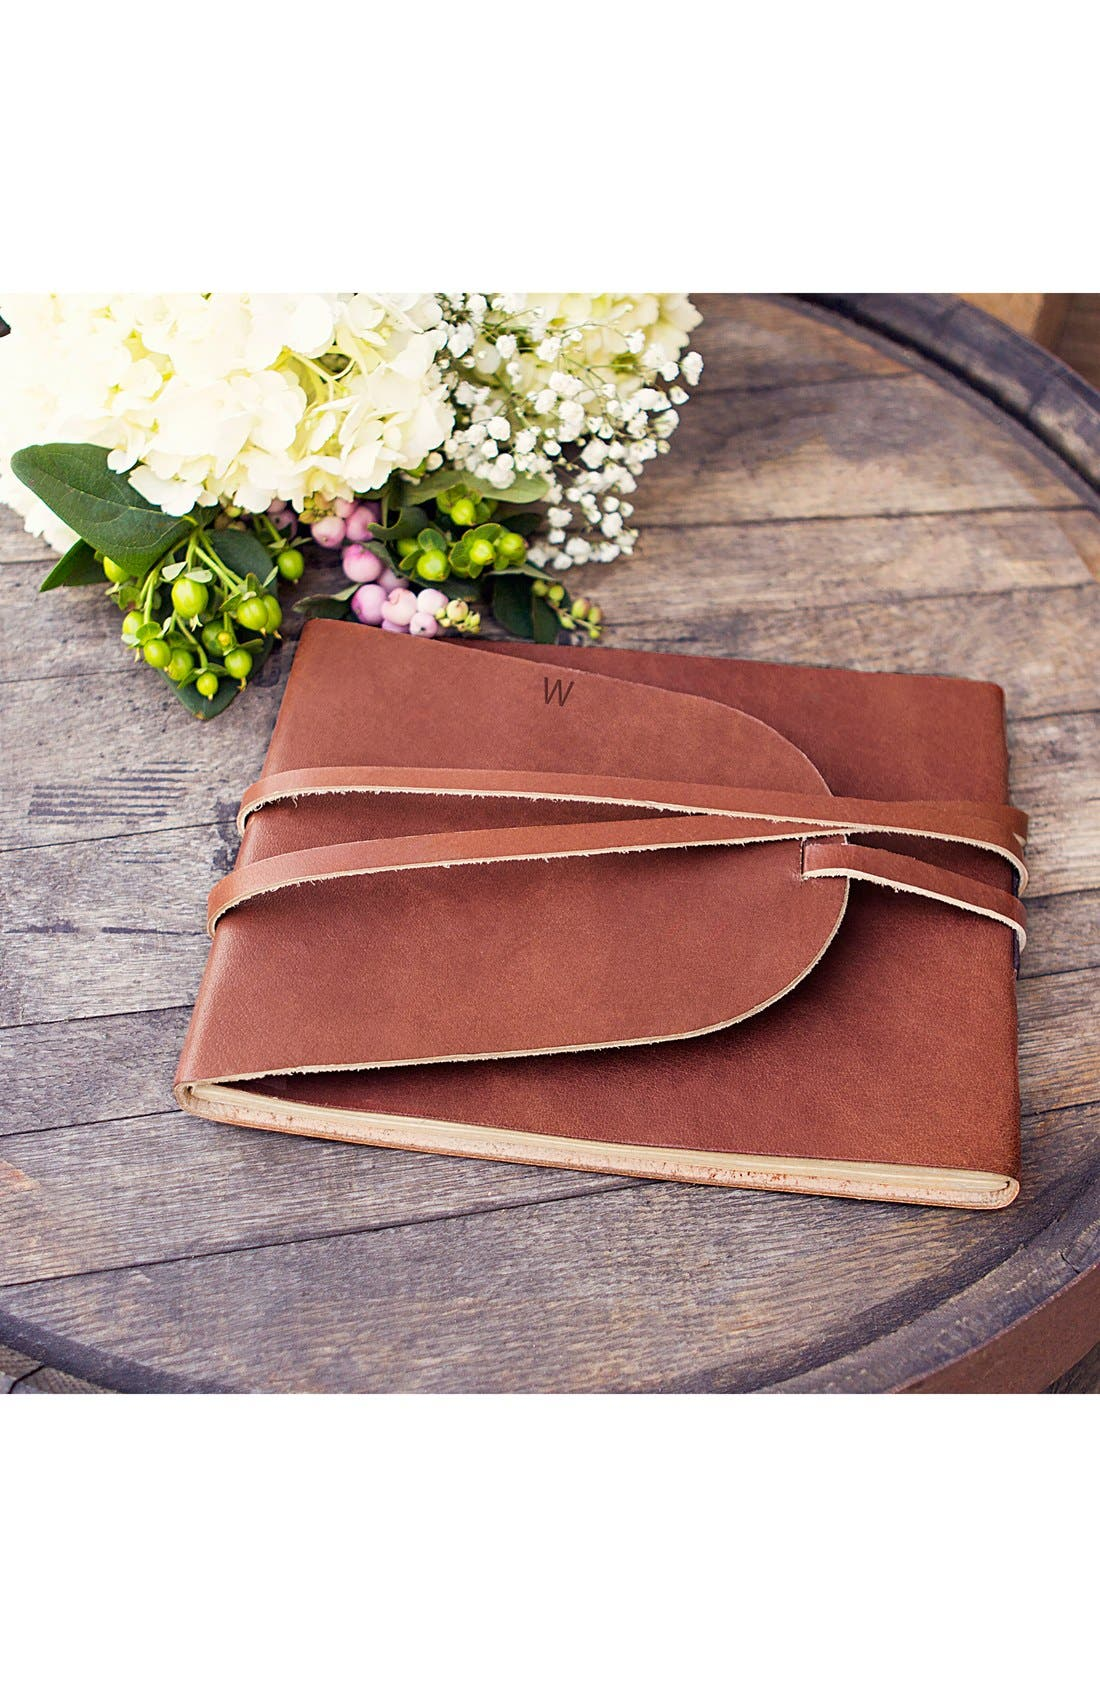 Monogram Leather Guest Book,                         Main,                         color, W- Brown